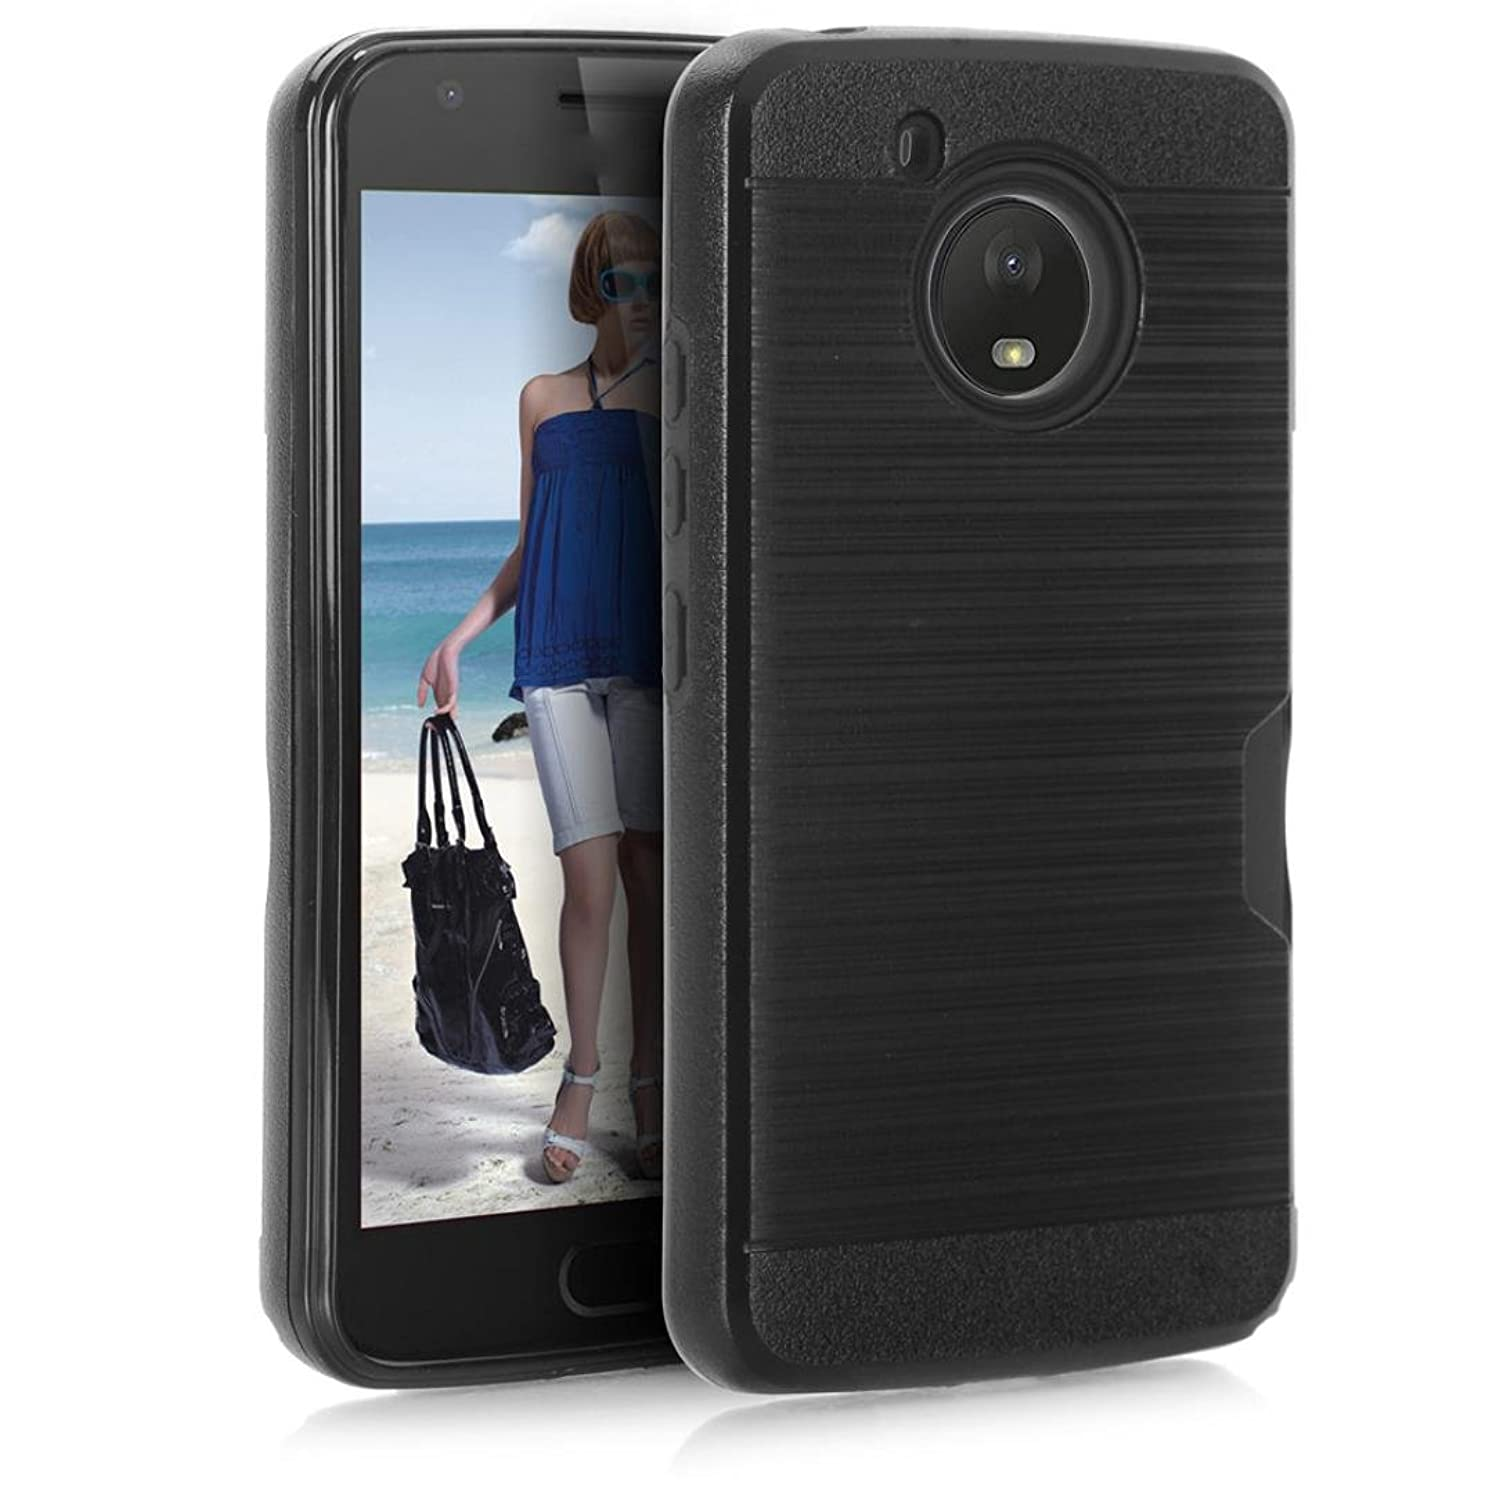 Slim PC+TPU Shockproof Case Cover With Card Pocket Holder For Motorola Moto E4 2017/E (4th Gen.)